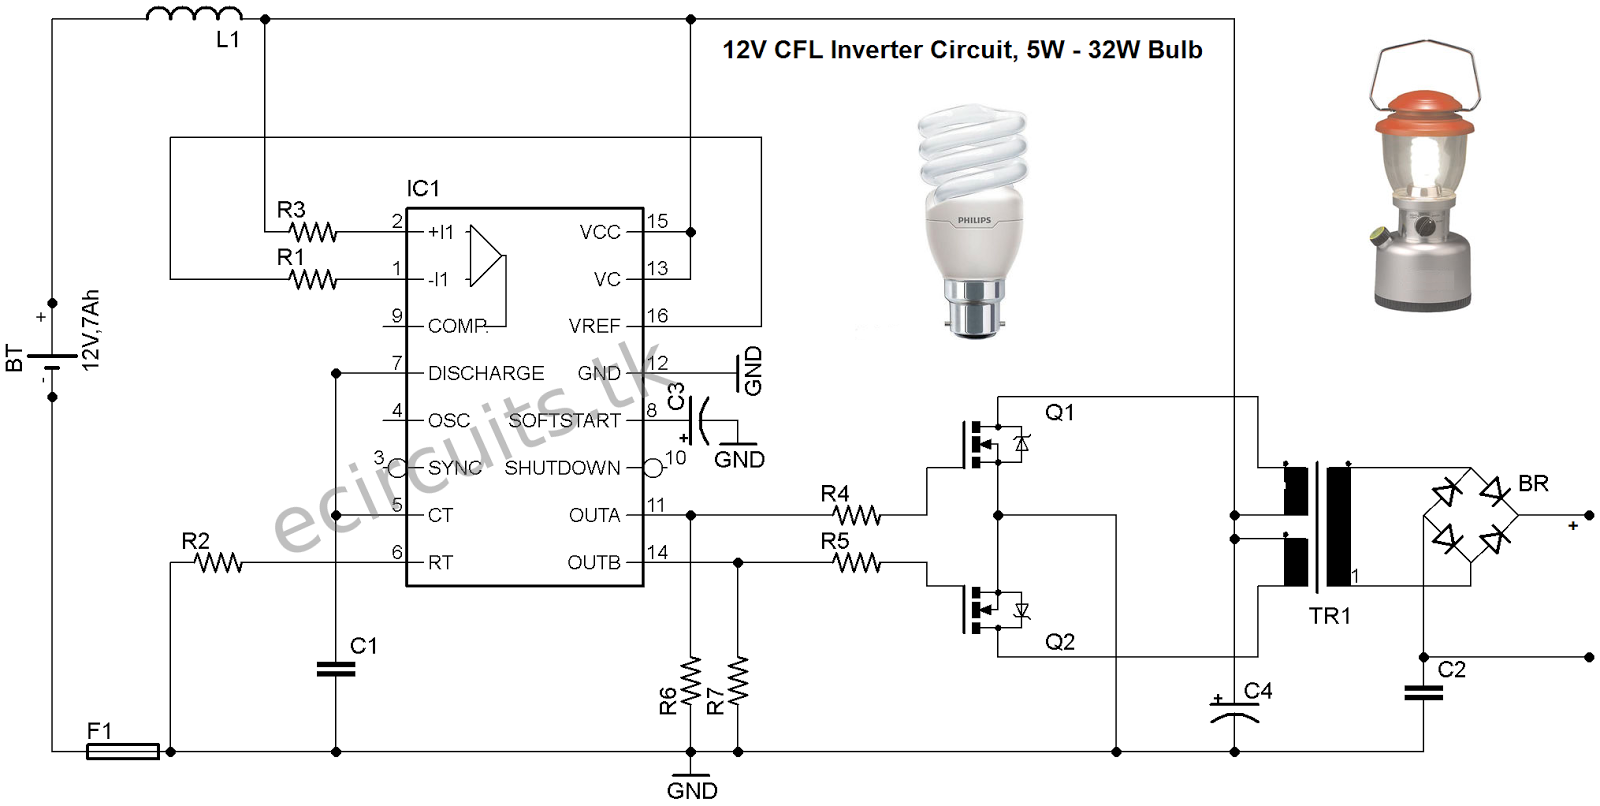 12v cfl emergency light circuit using 3525 ic mini inverter 12v cfl emergency light circuit using 3525 ic mini inverter circuit ccuart Image collections